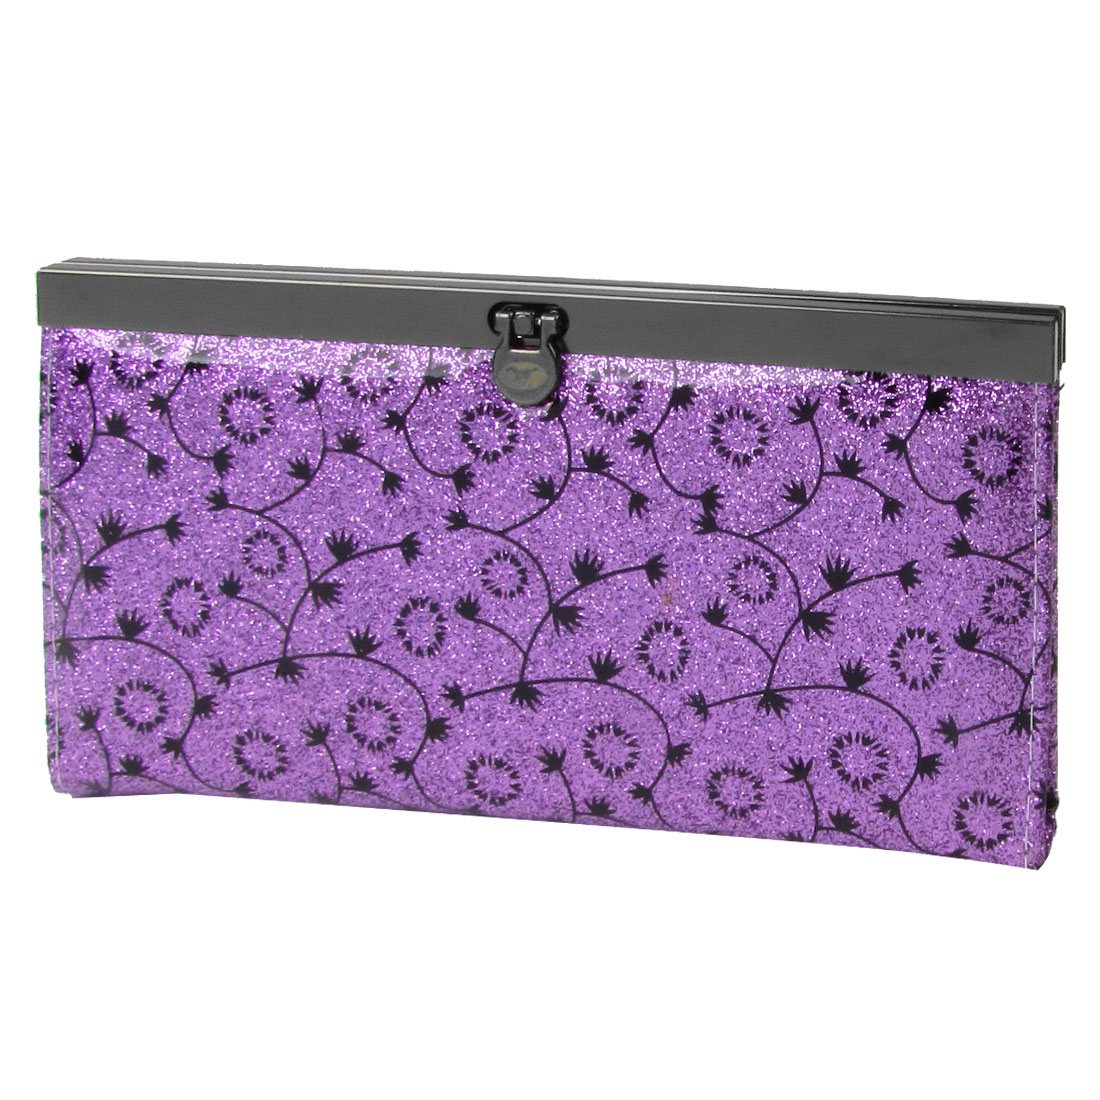 Lady Black Flower Print Flip Lock Powder Decor Wallet Purse Holder Purple